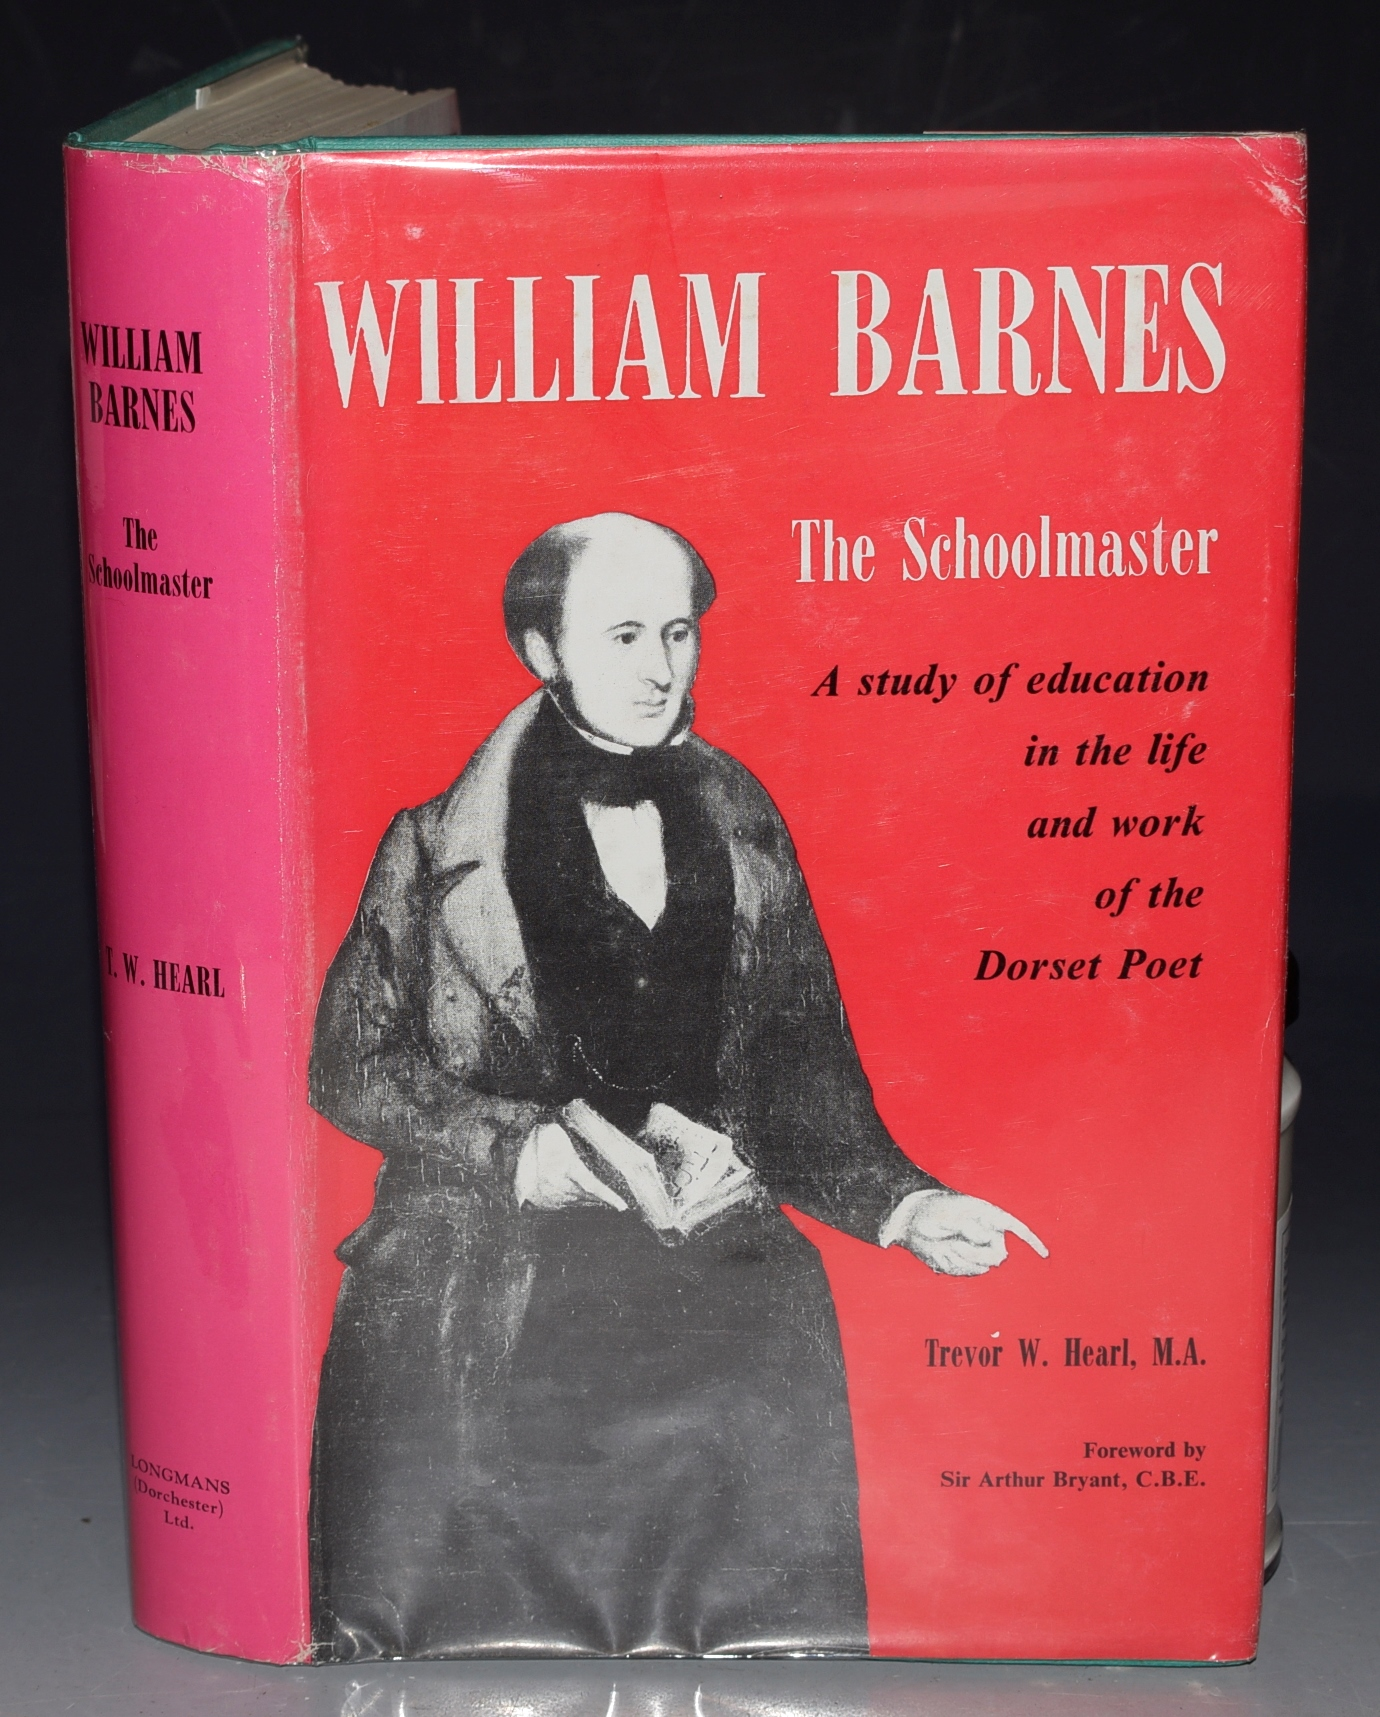 Image for William Barnes 1801 - 1886. The Schoolmaster. A study of education in the life and work of the Dorset Poet.